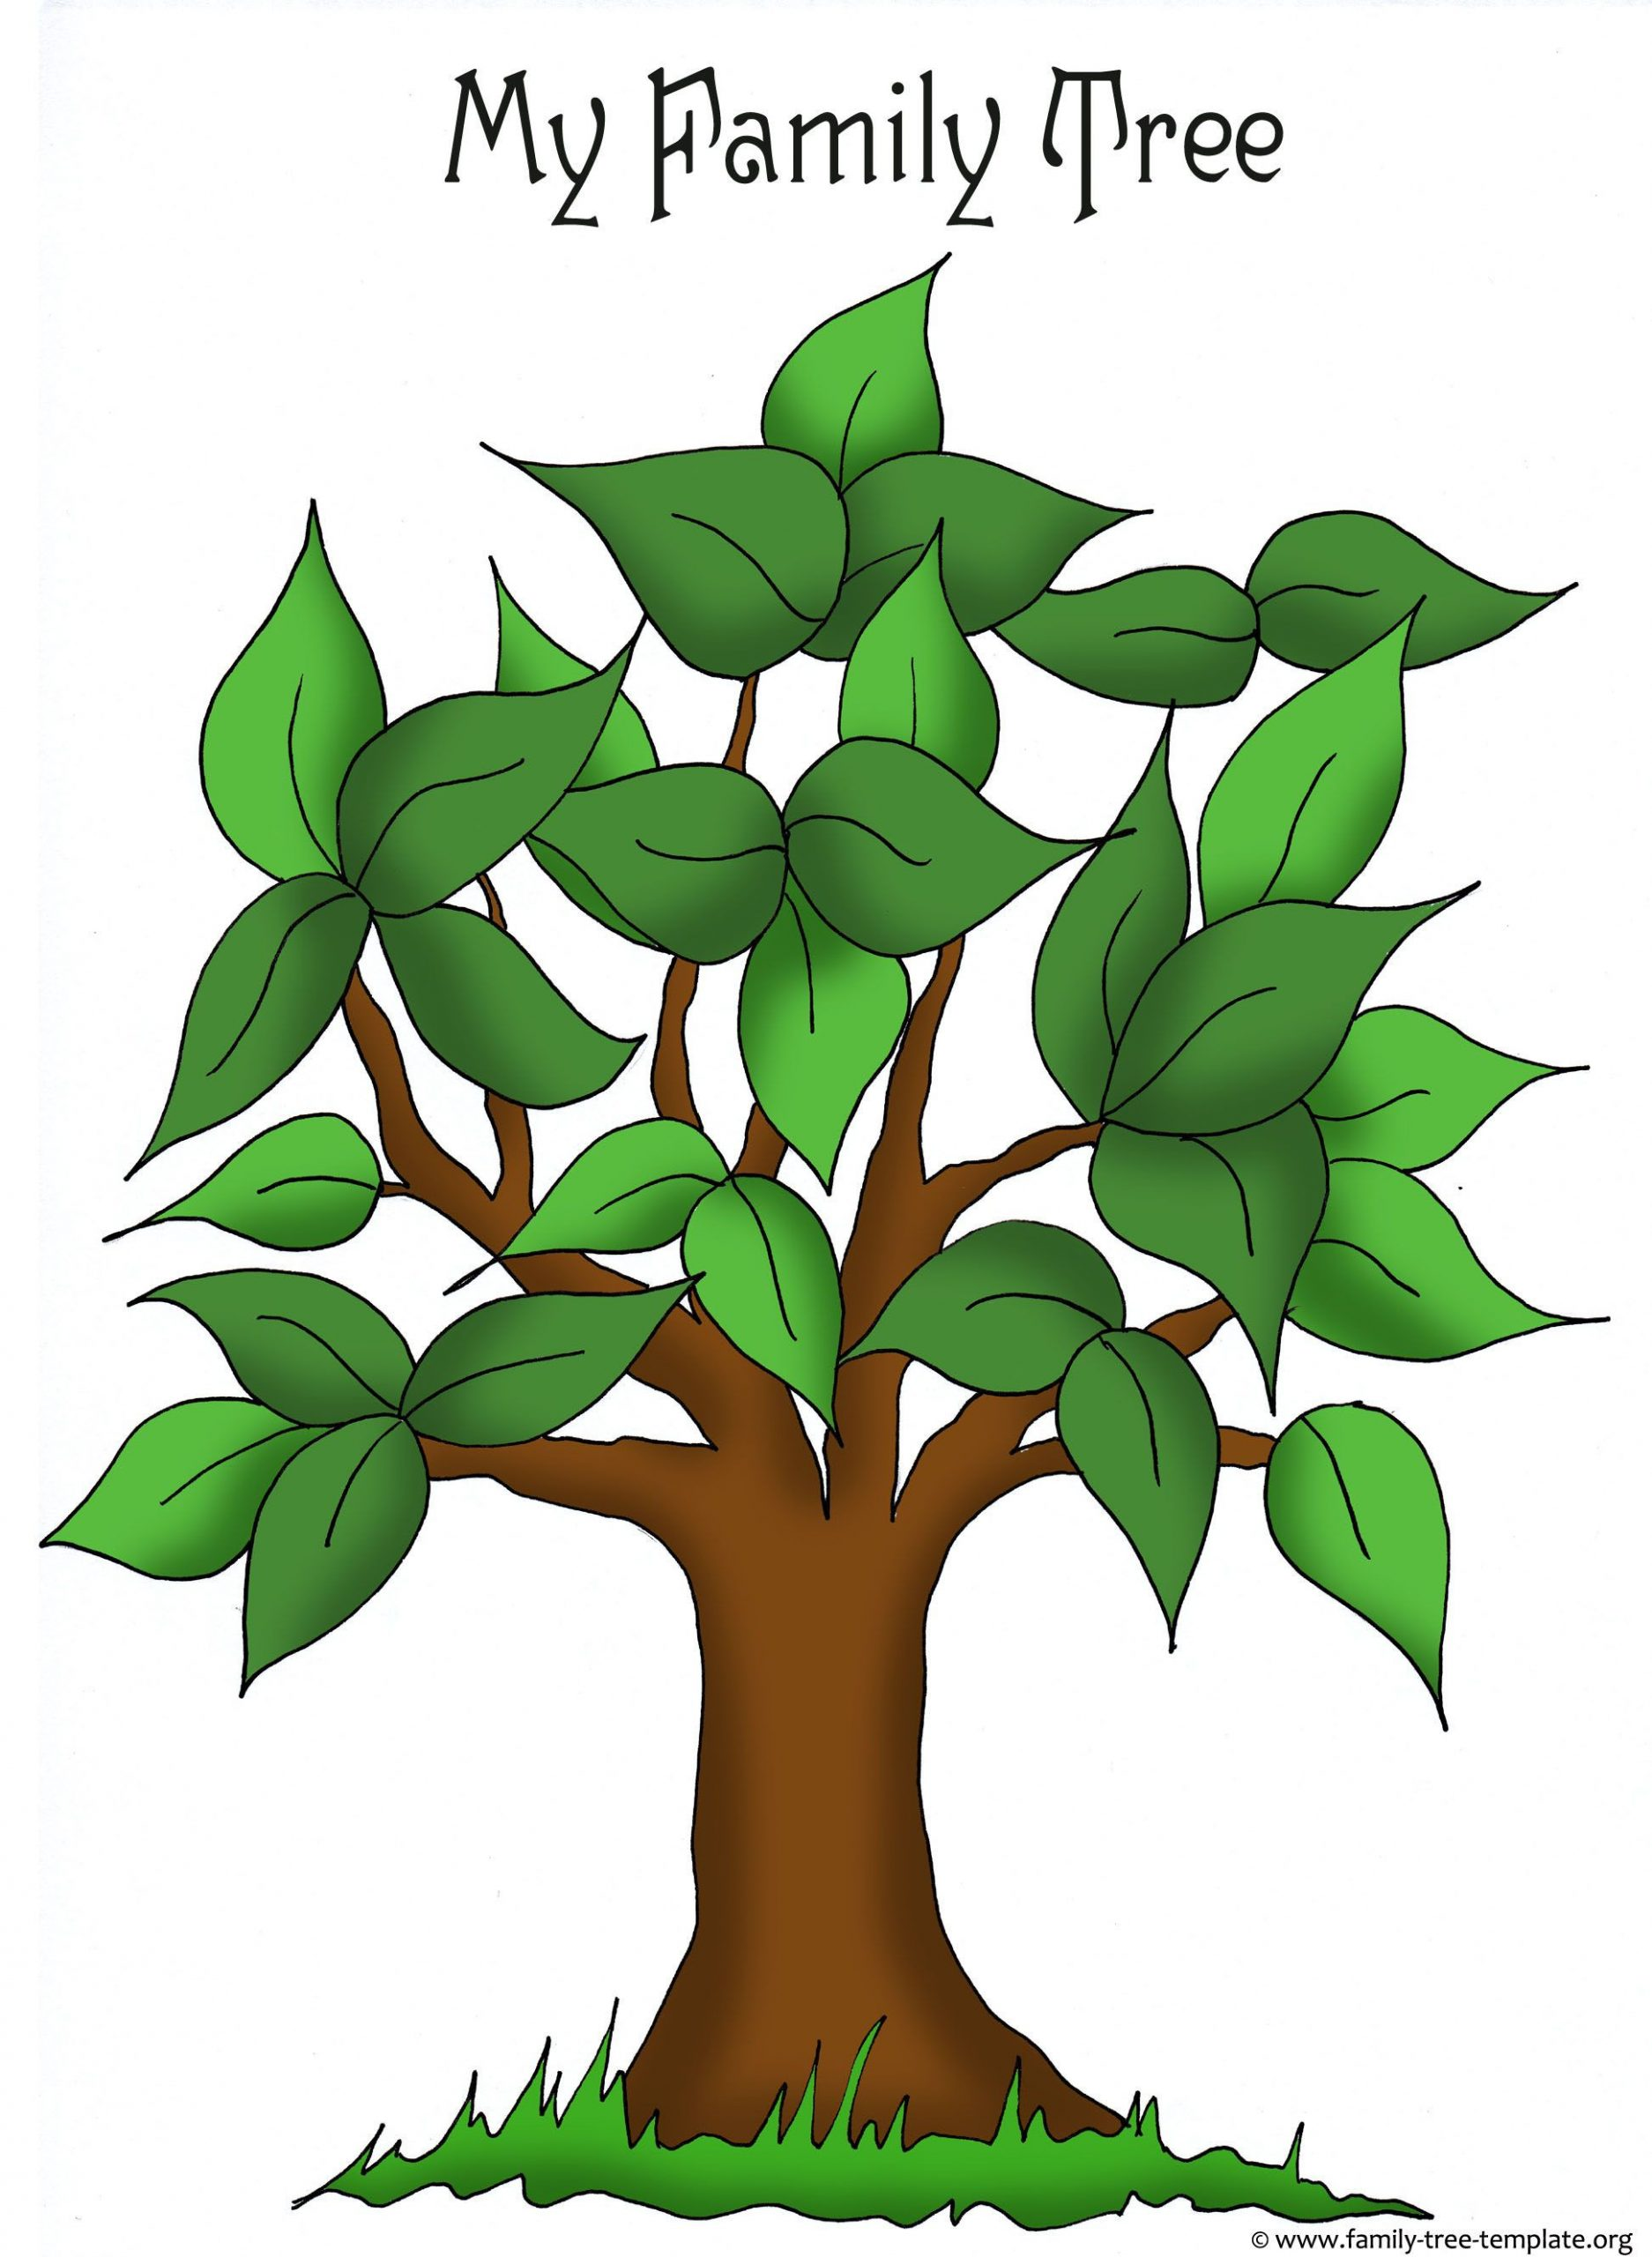 Artistic apple tree template for free placement of family